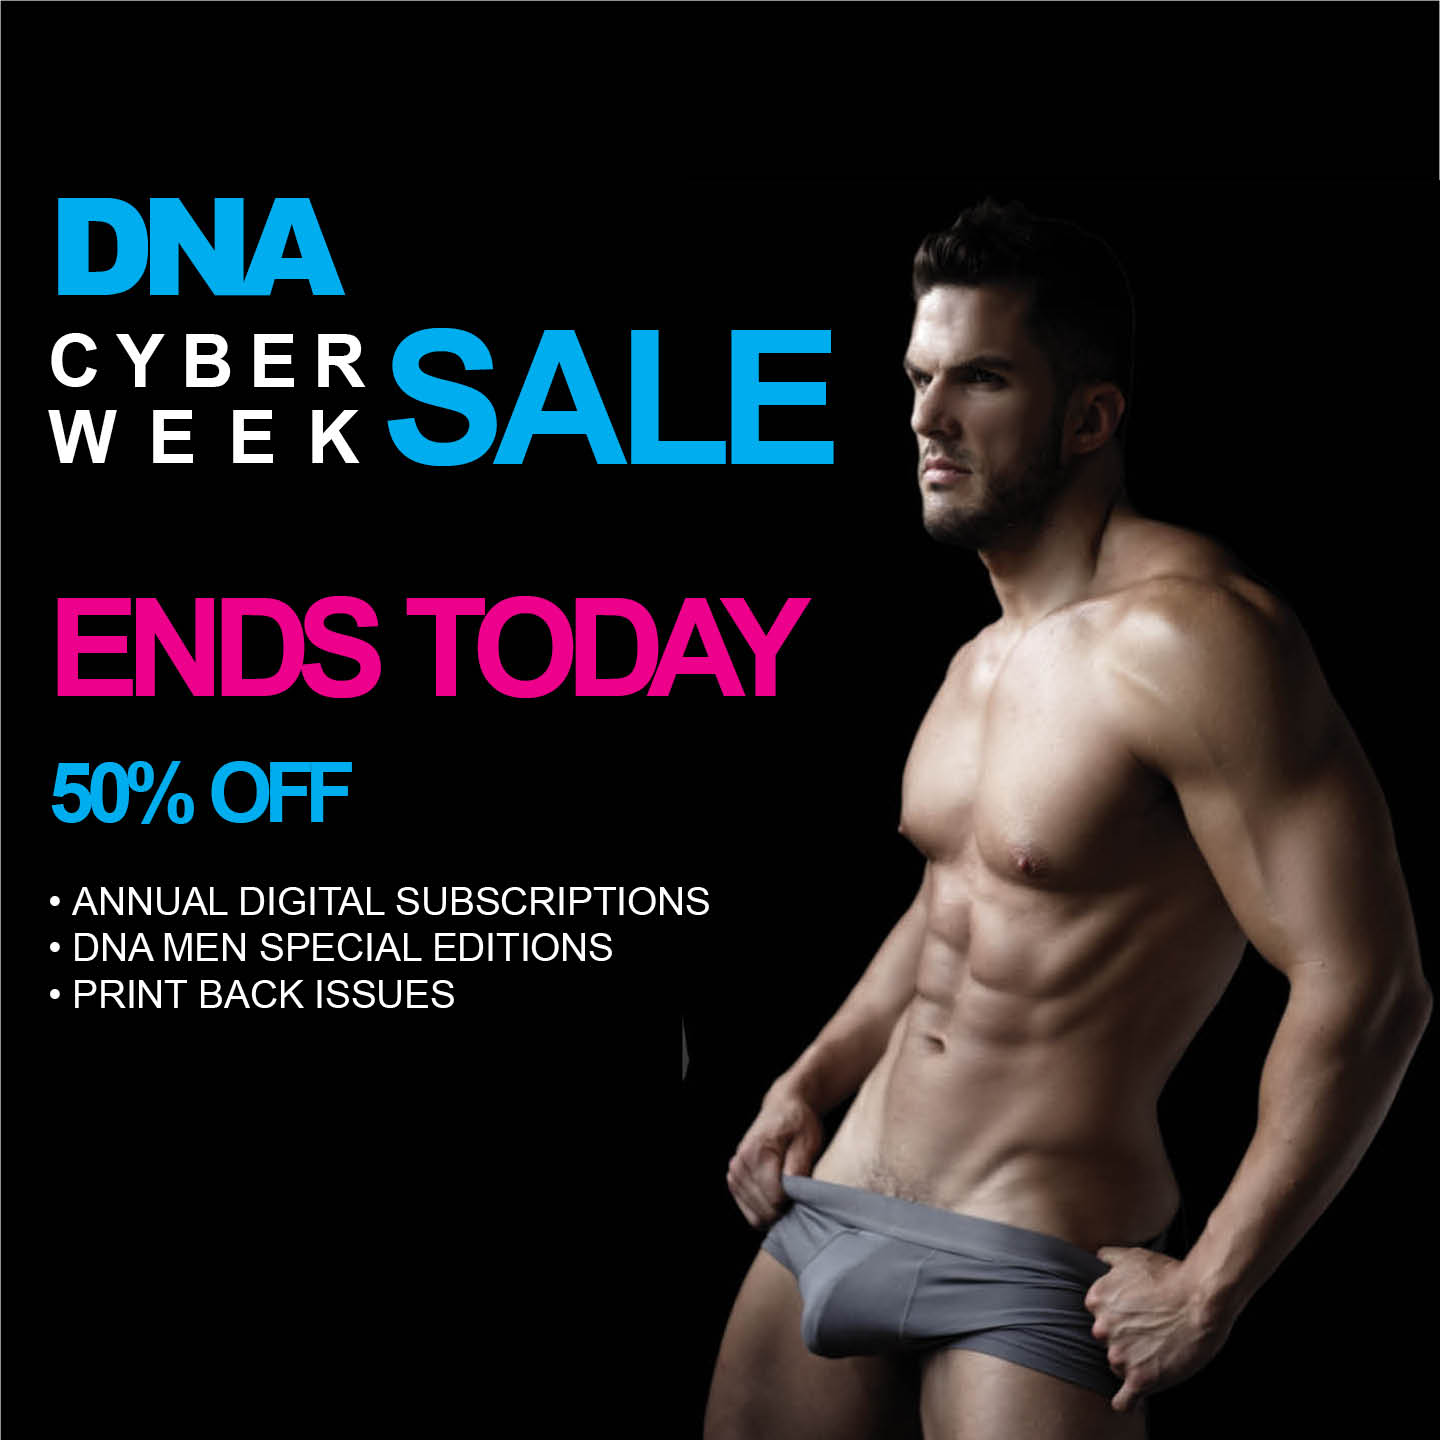 Cyber Week End Today Social Square